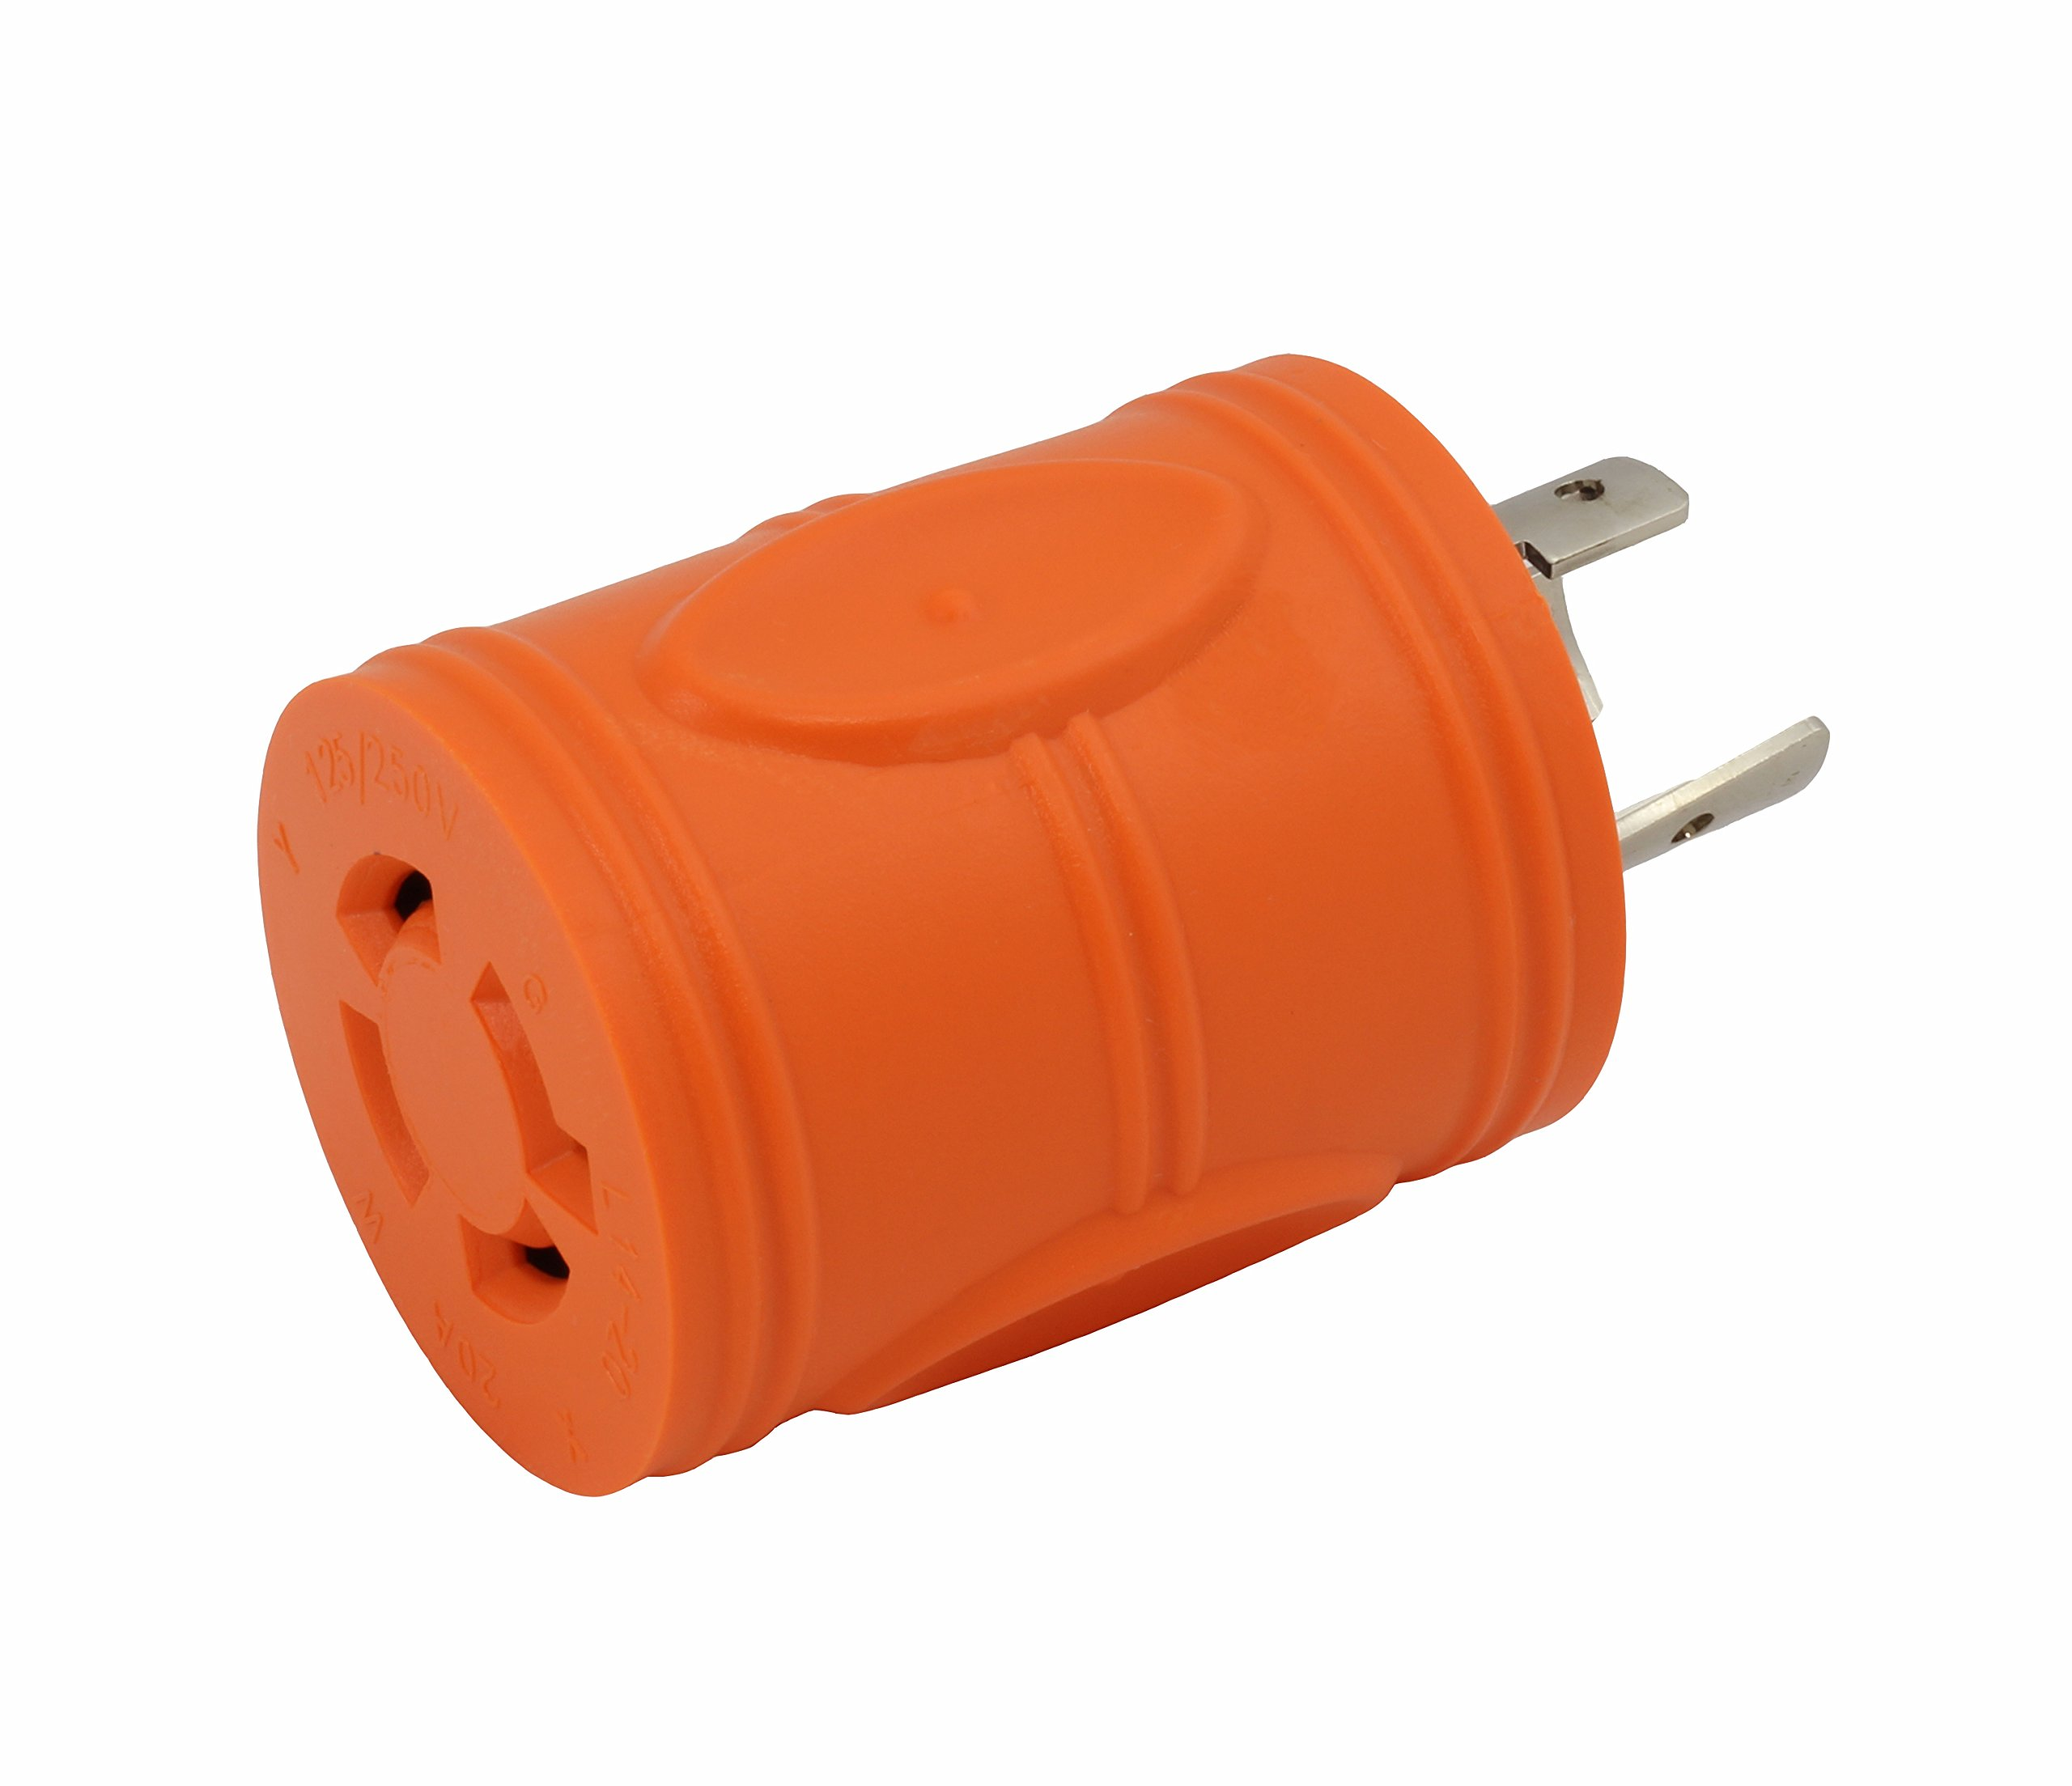 AC WORKS [ADL620L1420] Locking Adapter L6-20P 20Amp 250Volt Locking Plug to 4-Prong 20Amp L14-20R Adapter